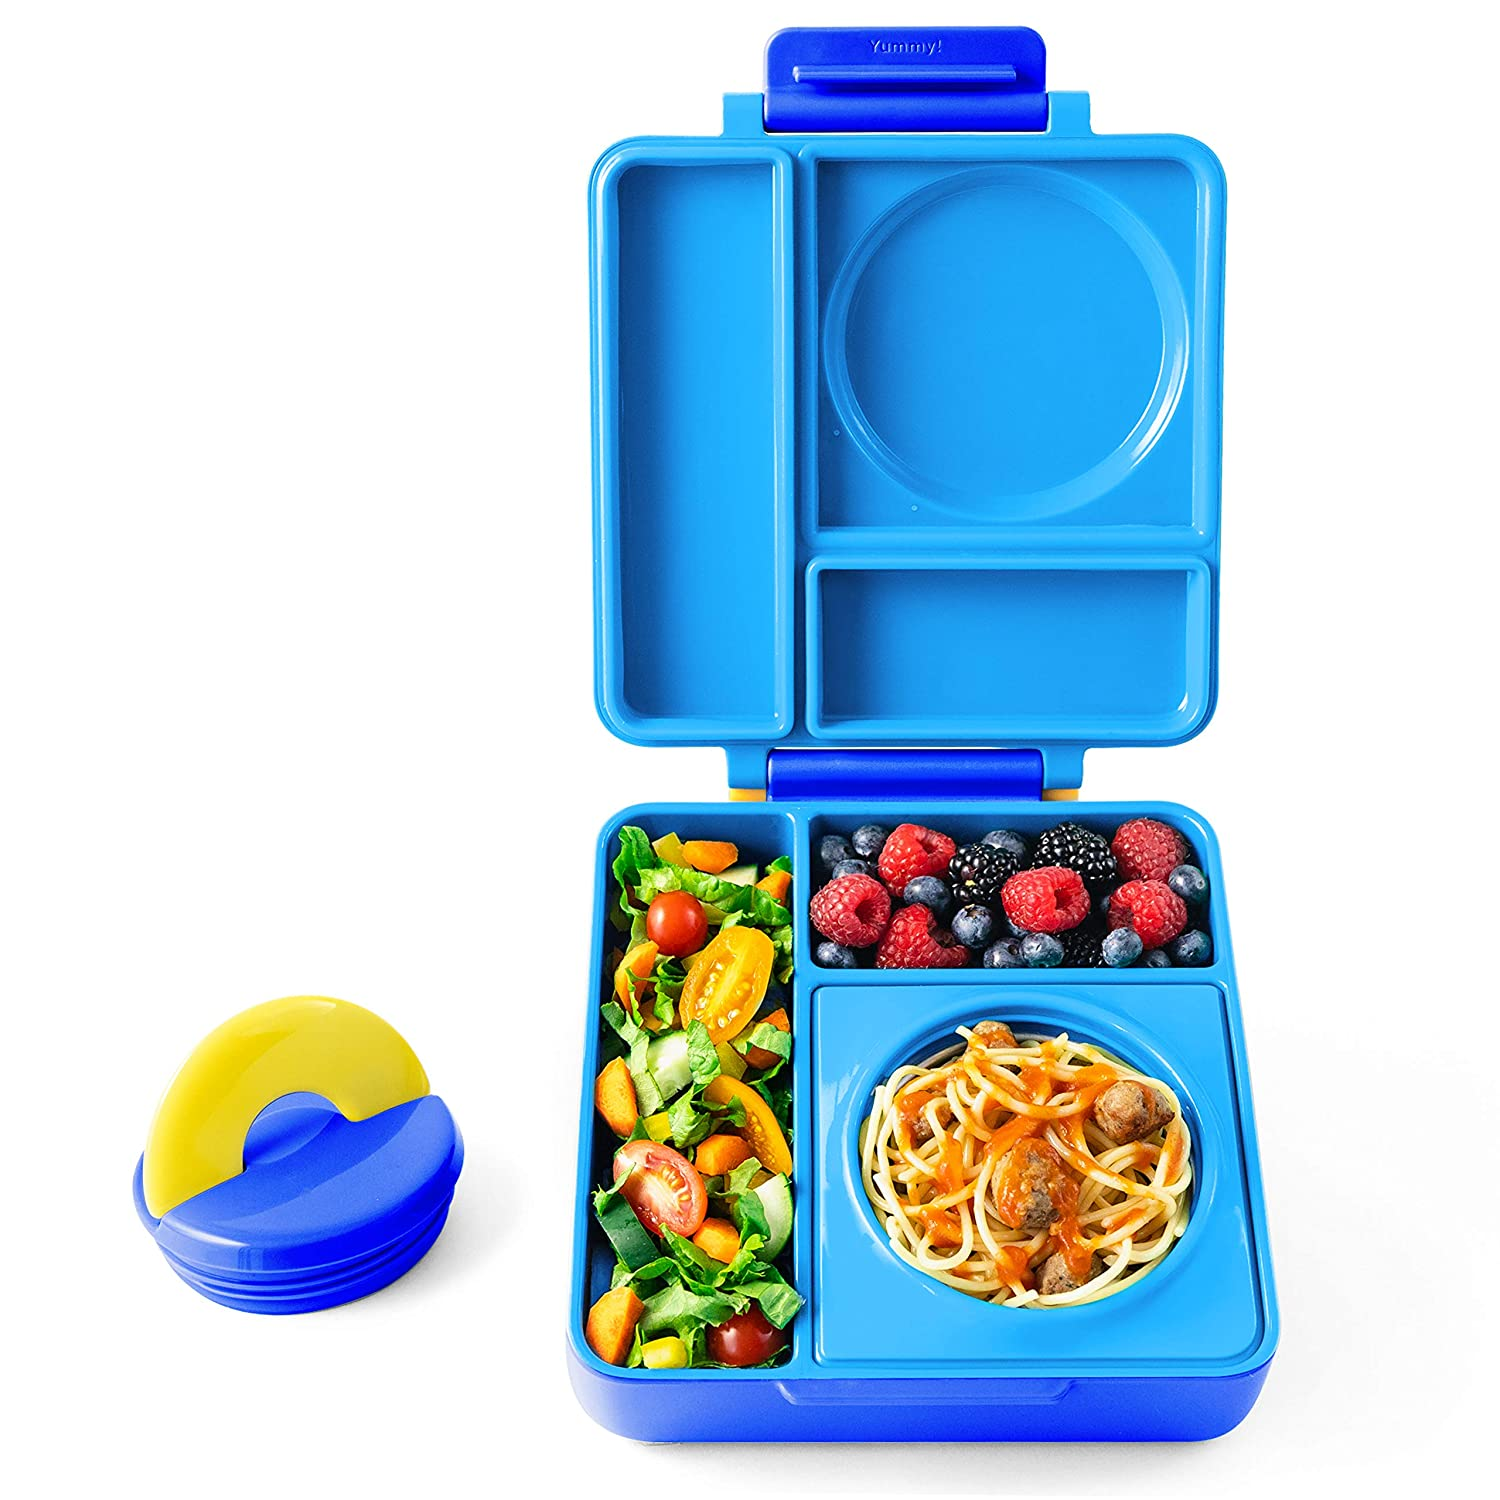 OmieBox - Leak-Proof 3-Compartment Bento Lunch Box For Kids - Includes Insulated Food Thermos - Two Temperature Zones For Hot & Cold Food (Blue Sky)